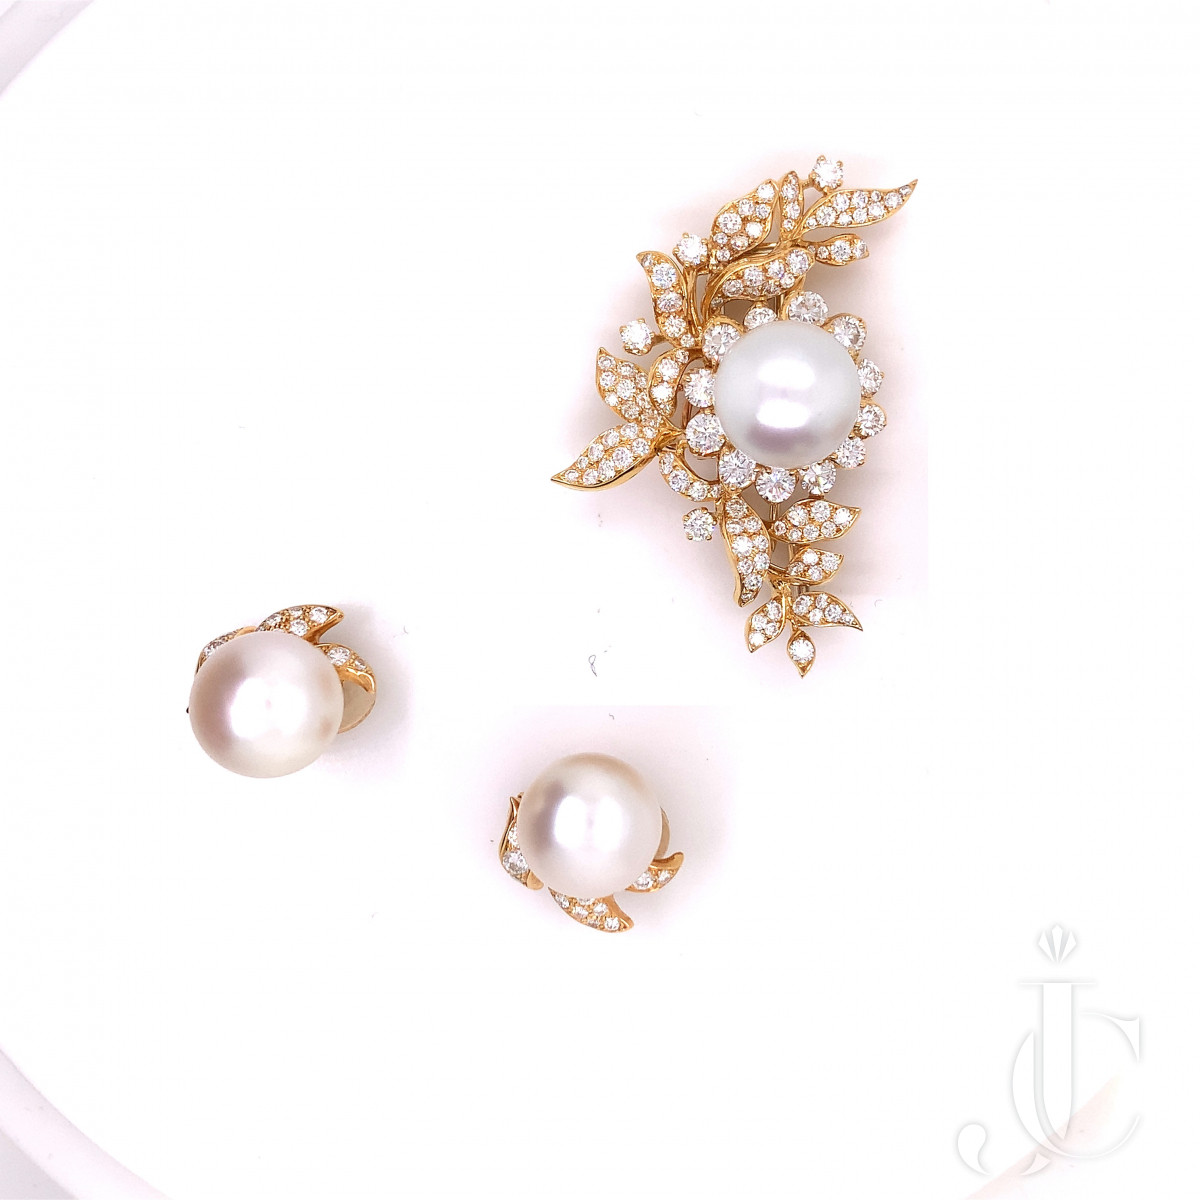 A set of diamond, cultured pearl and 18K gold brooch, earring by ALEXANDRE REZA.